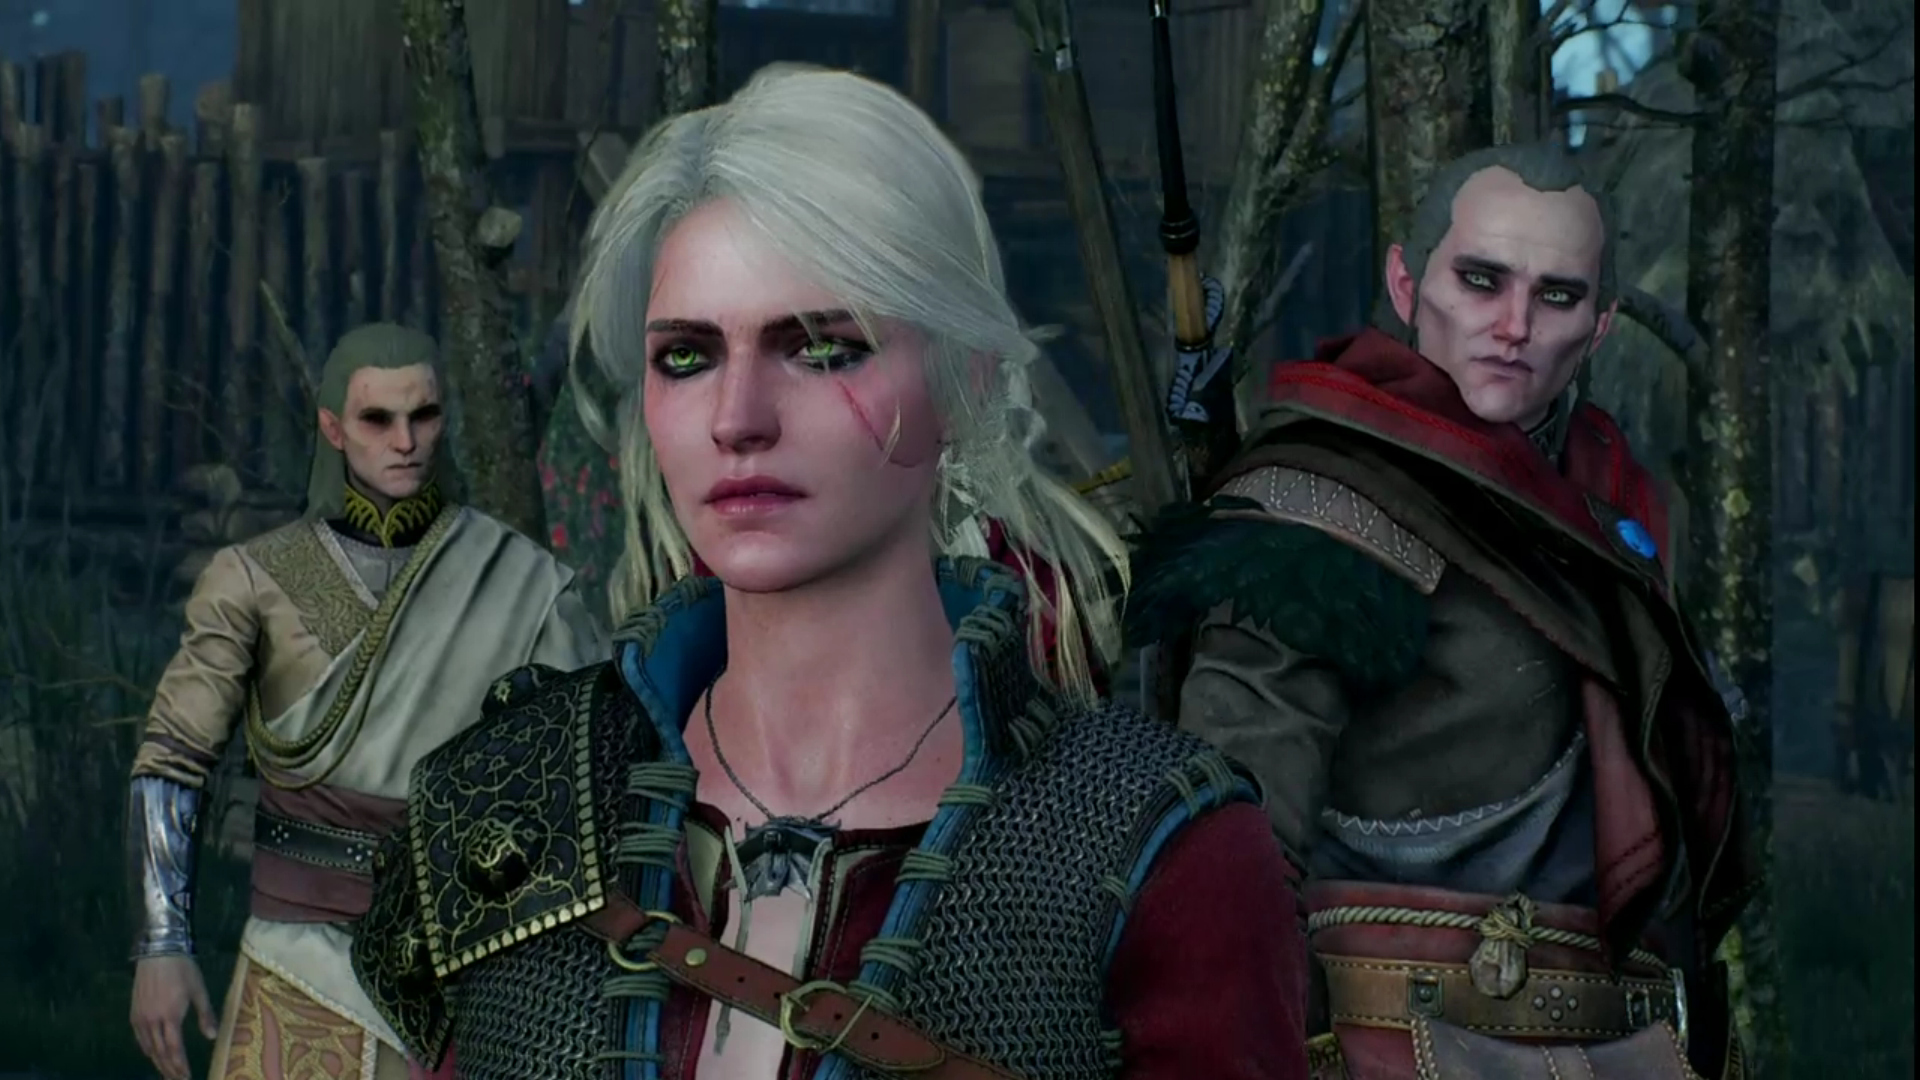 Ge'els, Ciri in DLC gear, and Avallac'h - all vanilla, without mods changing how they look